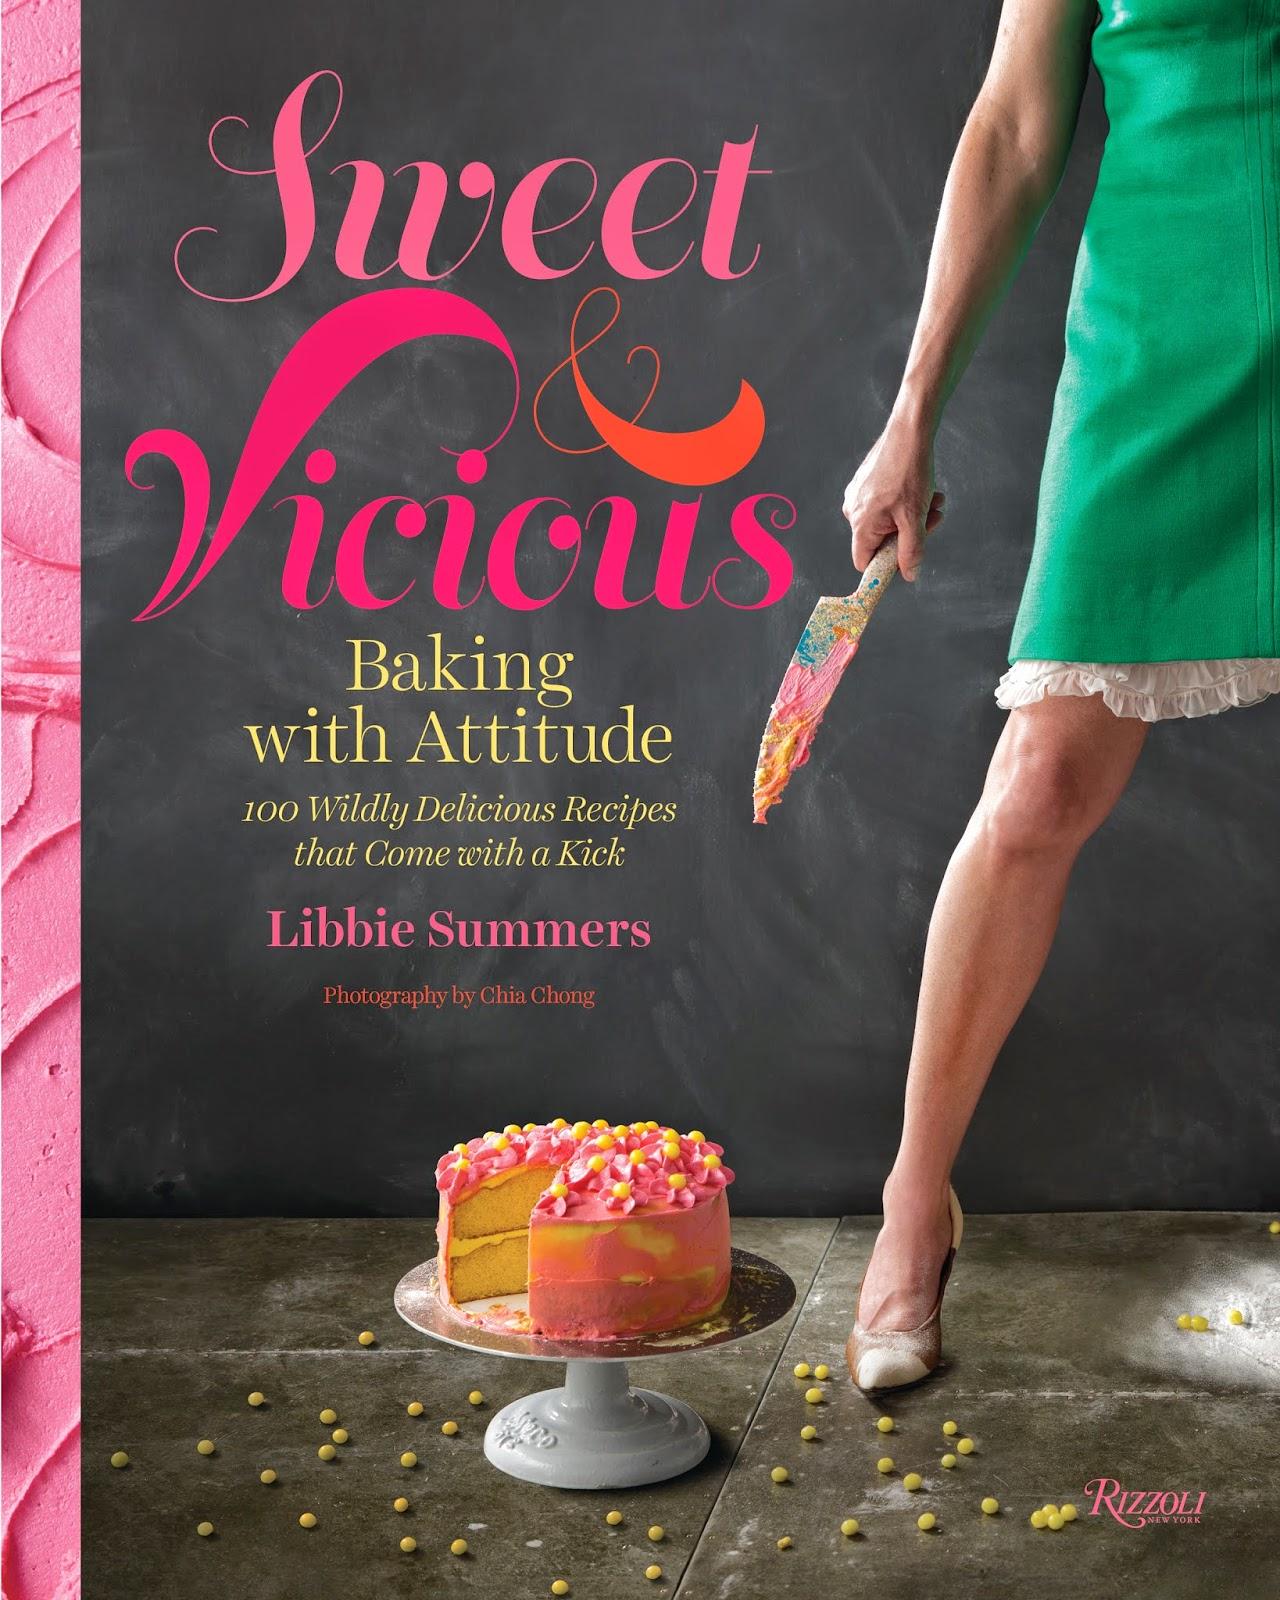 The Entertaining House: Stylish notes on Food :: Sweet & Vicious - Baking with Attitude